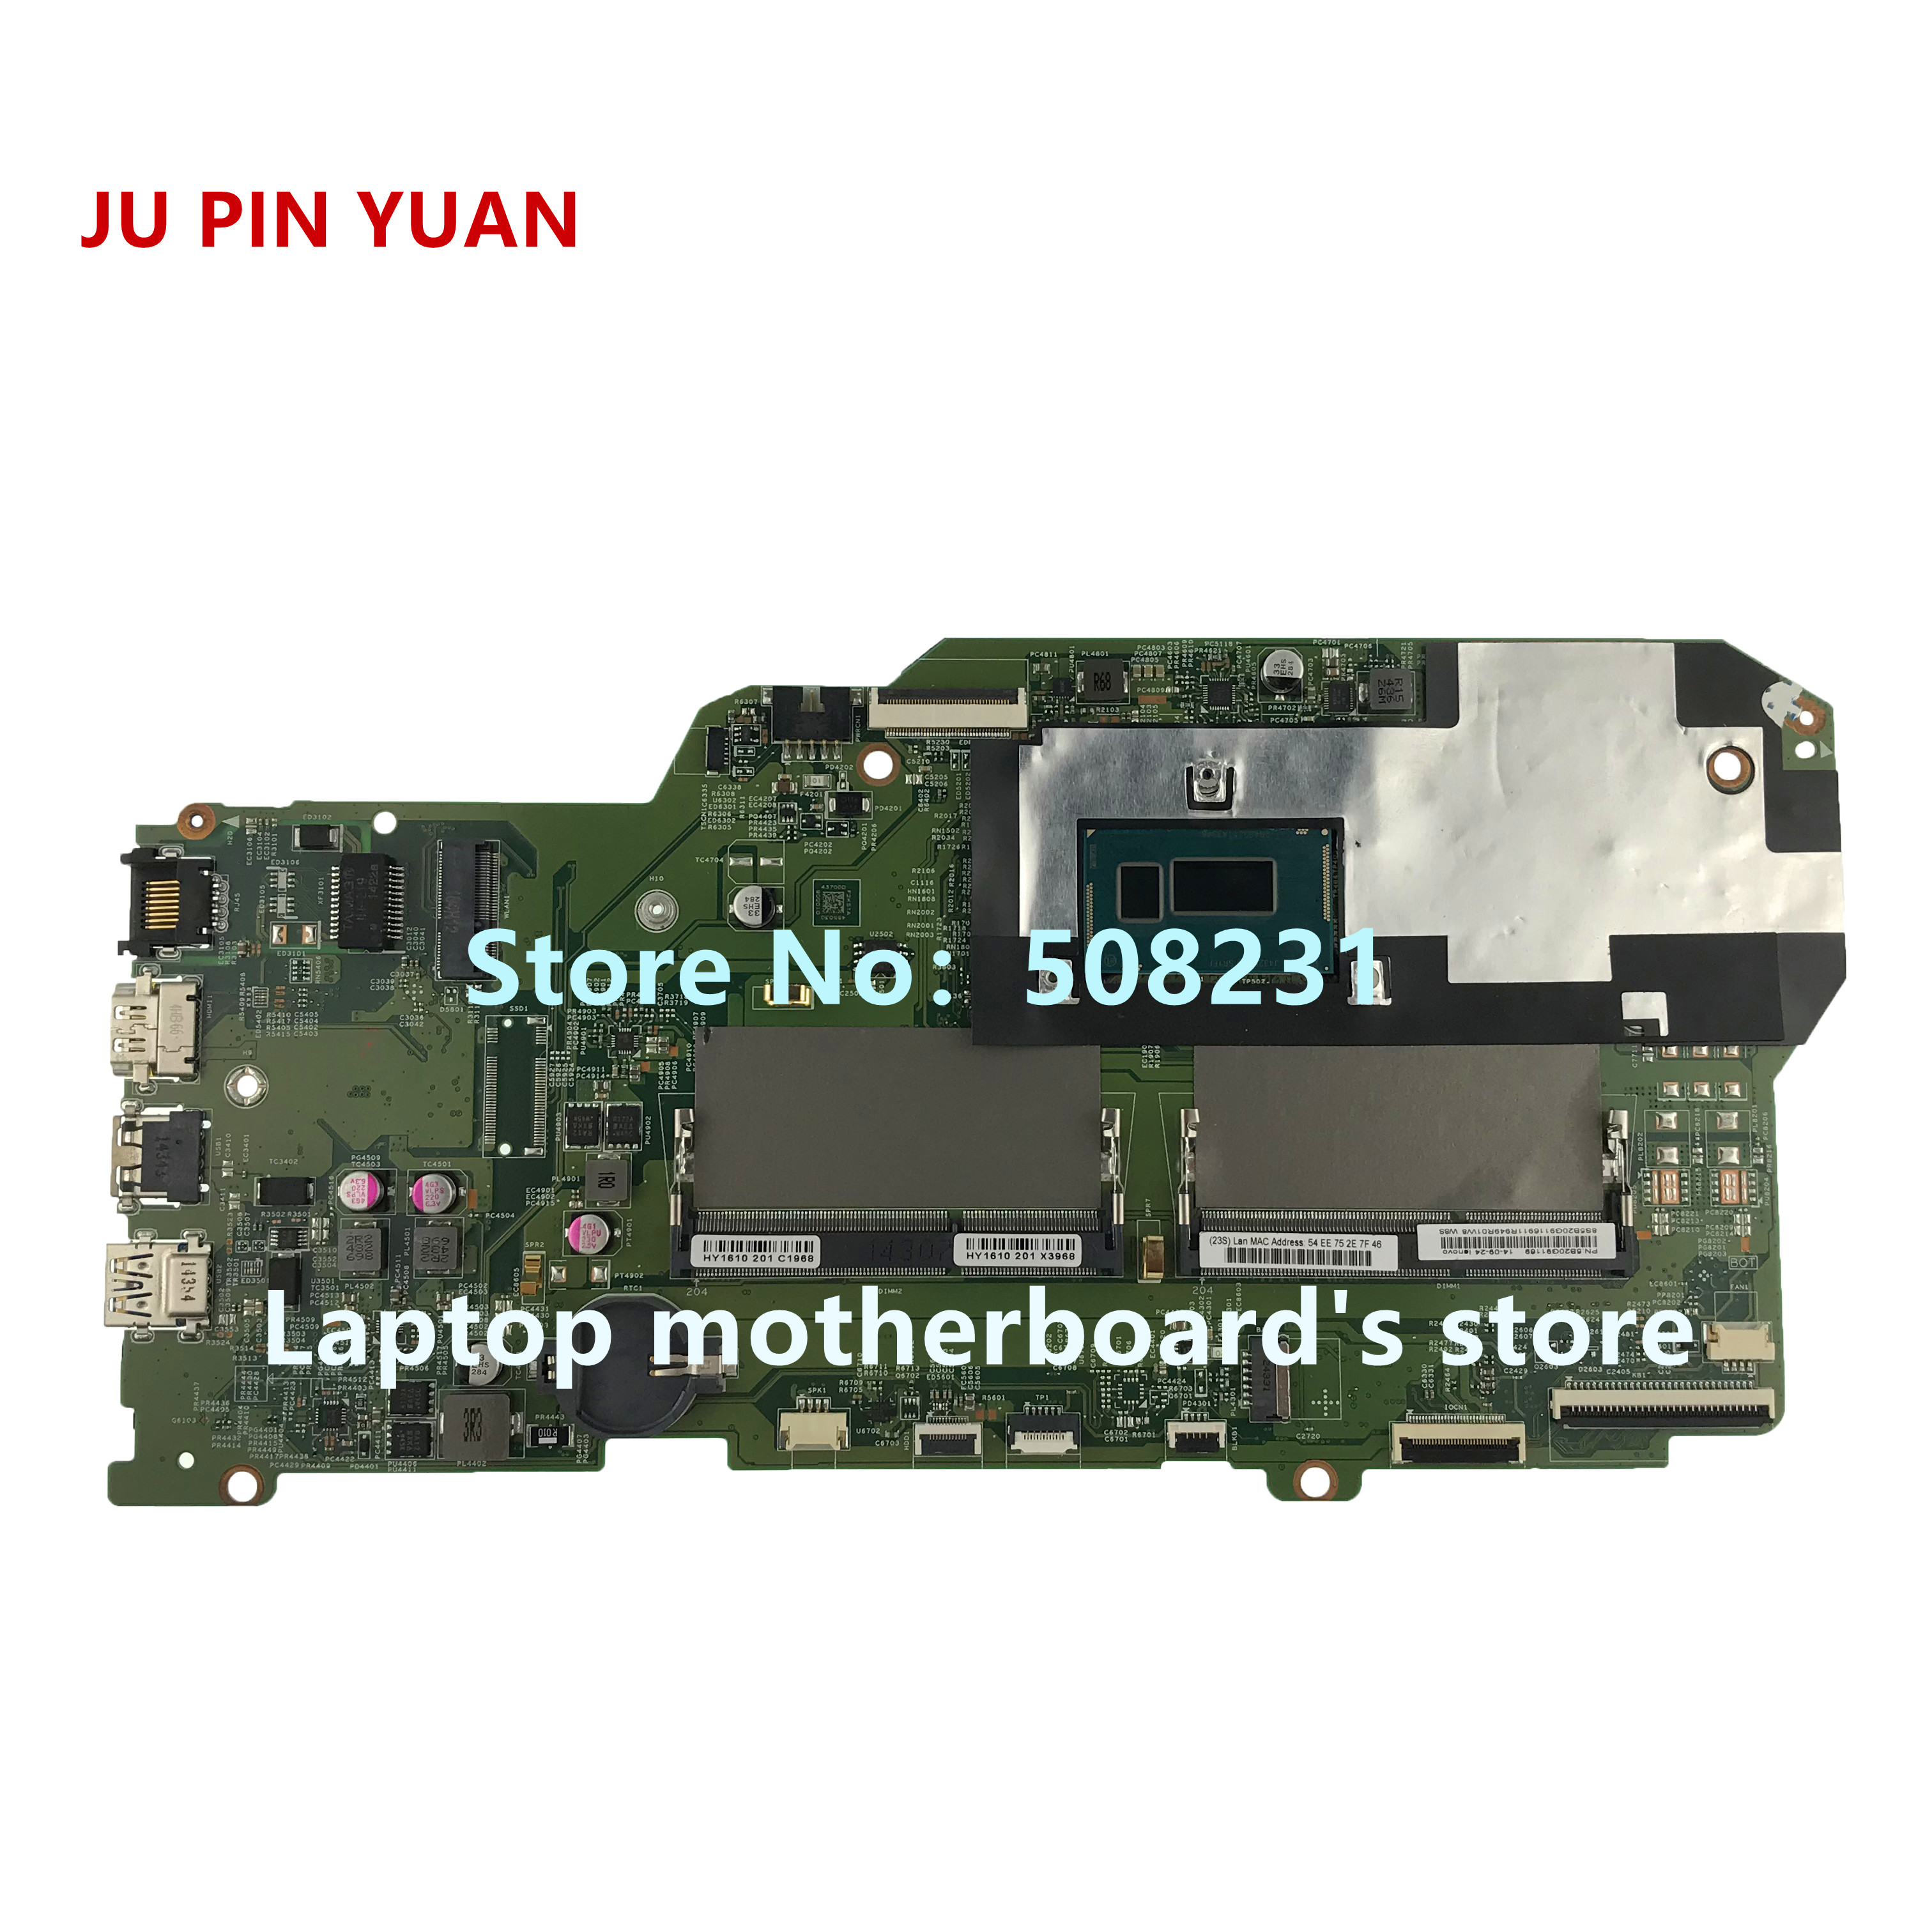 Ju Pin Yuan 448.03g01.0011 5b20q91169 Mainboard For Lenovo Flex 2 Pro Edge 15 Laptop Motherboard With I5-4210u Cpu Fully Tested Computer & Office Laptop Accessories